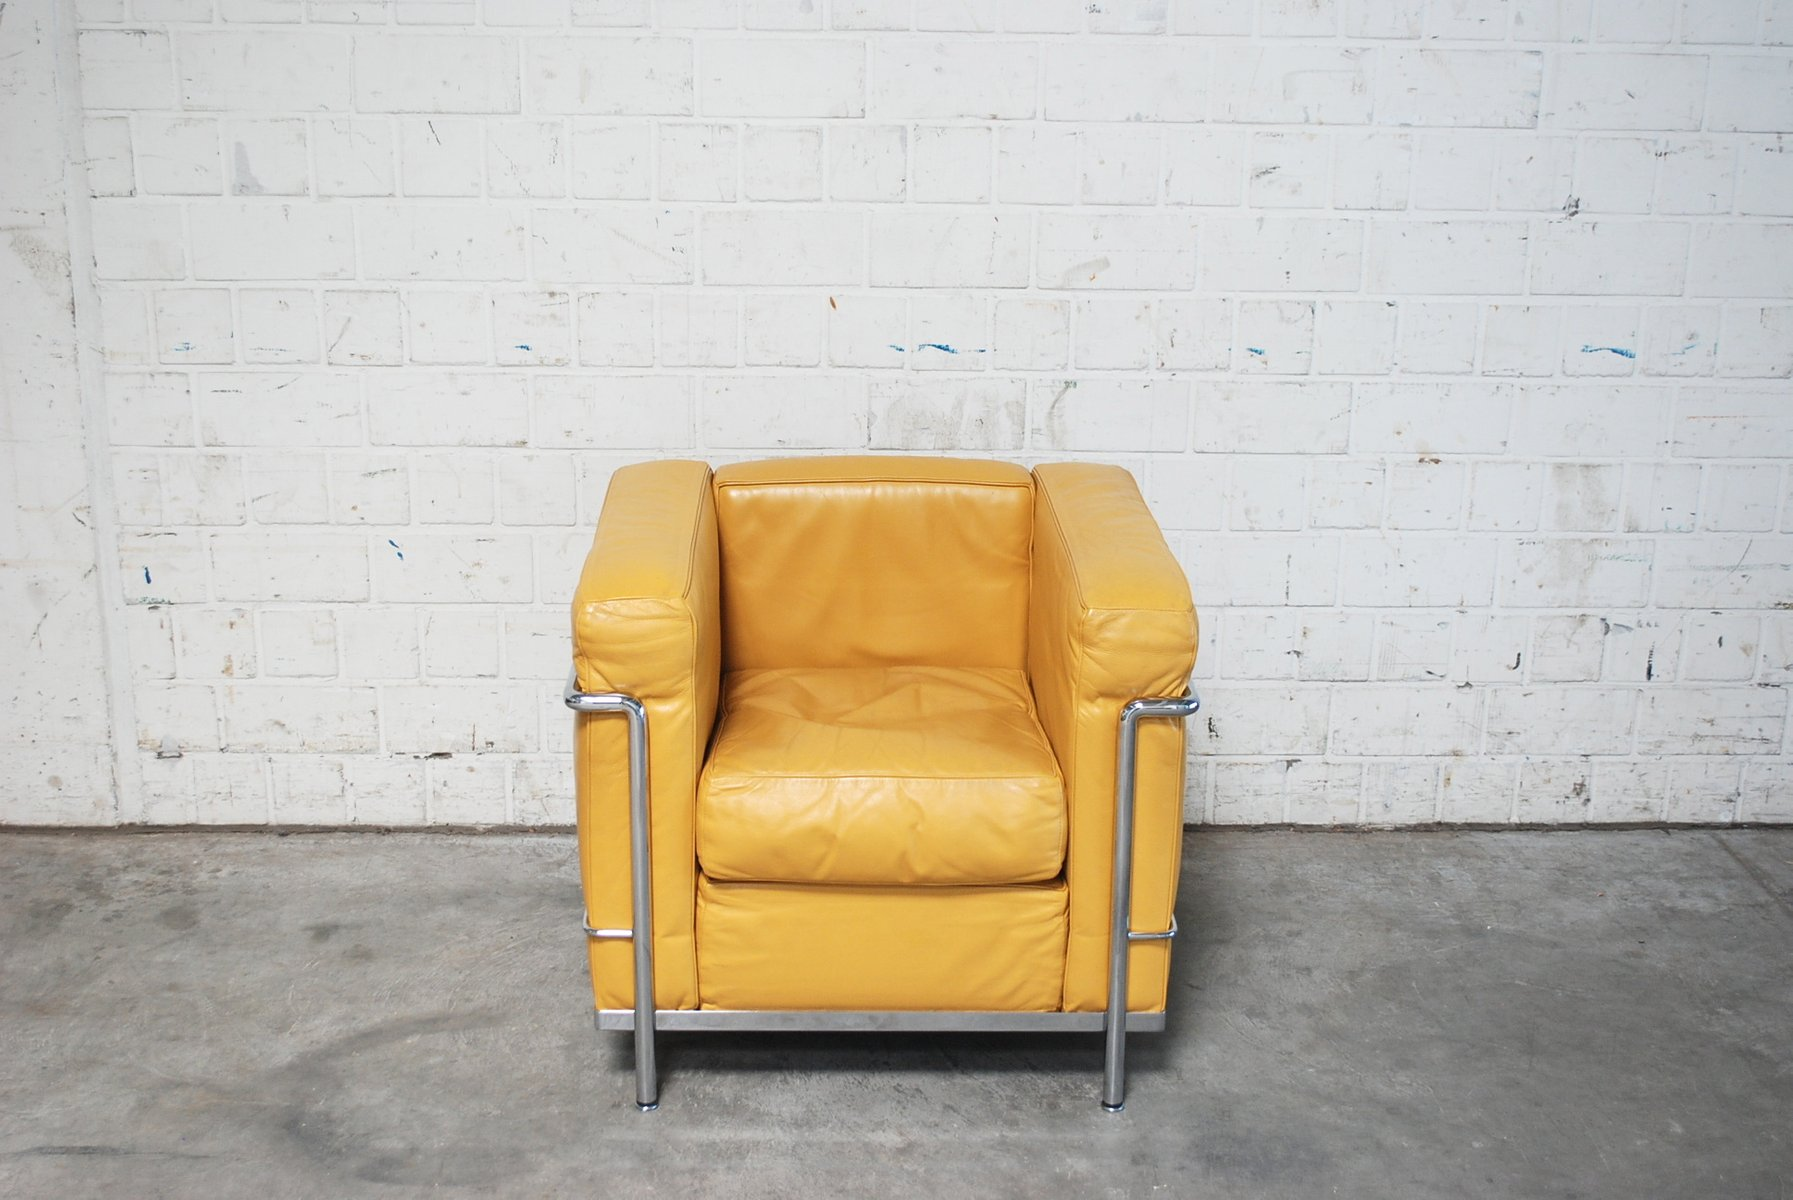 Vintage Yellow Model Lc2 Leather Chair By Le Corbusier For